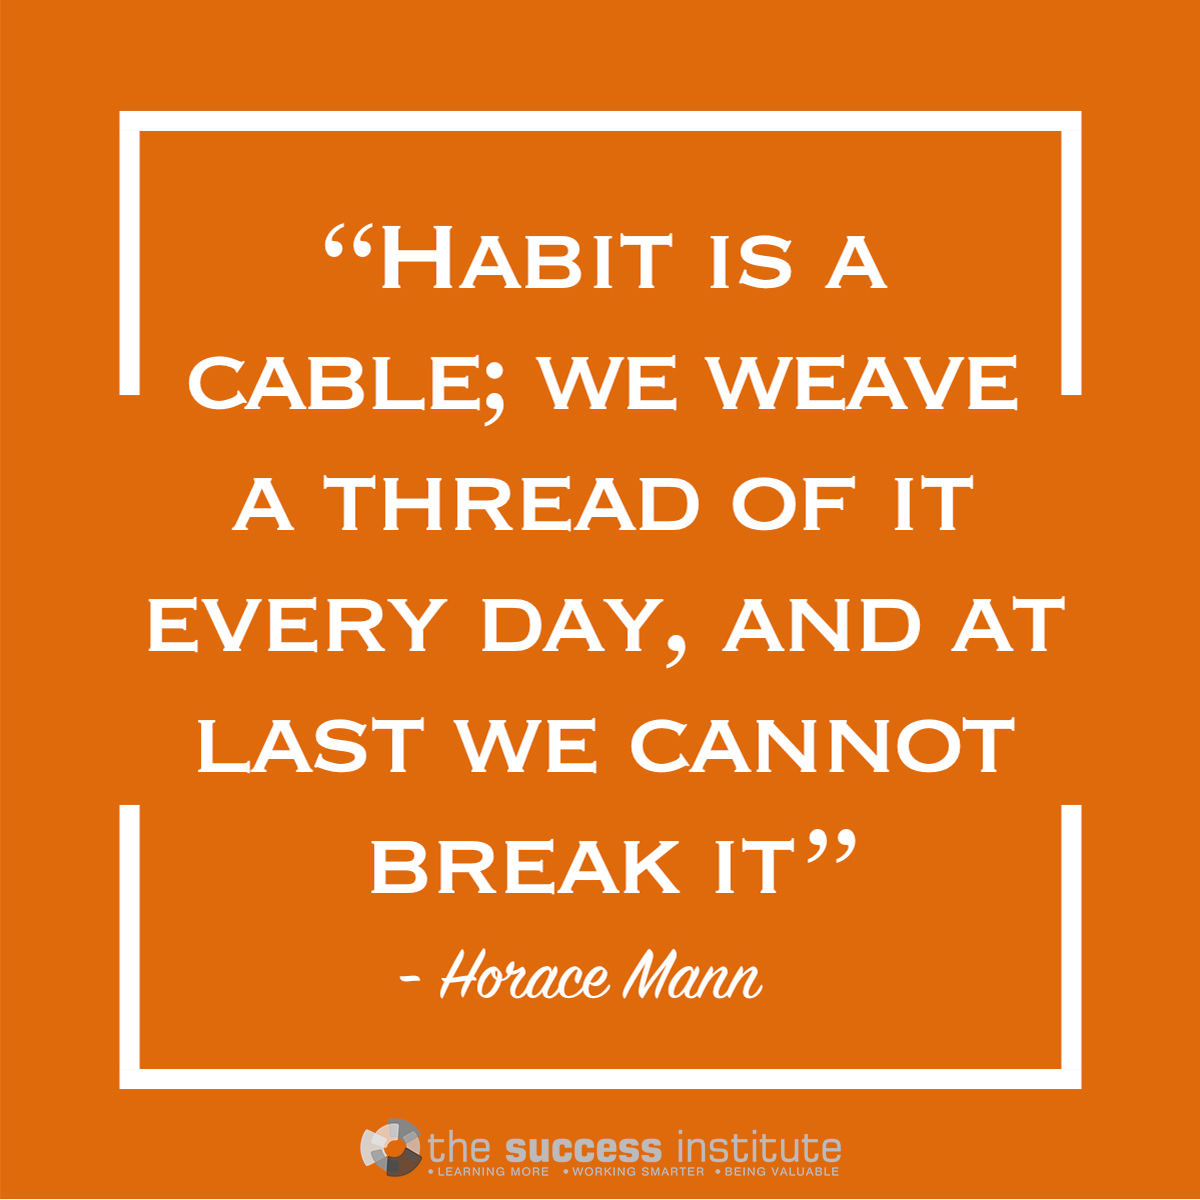 Habit is a cable; we have a thread of it every day.